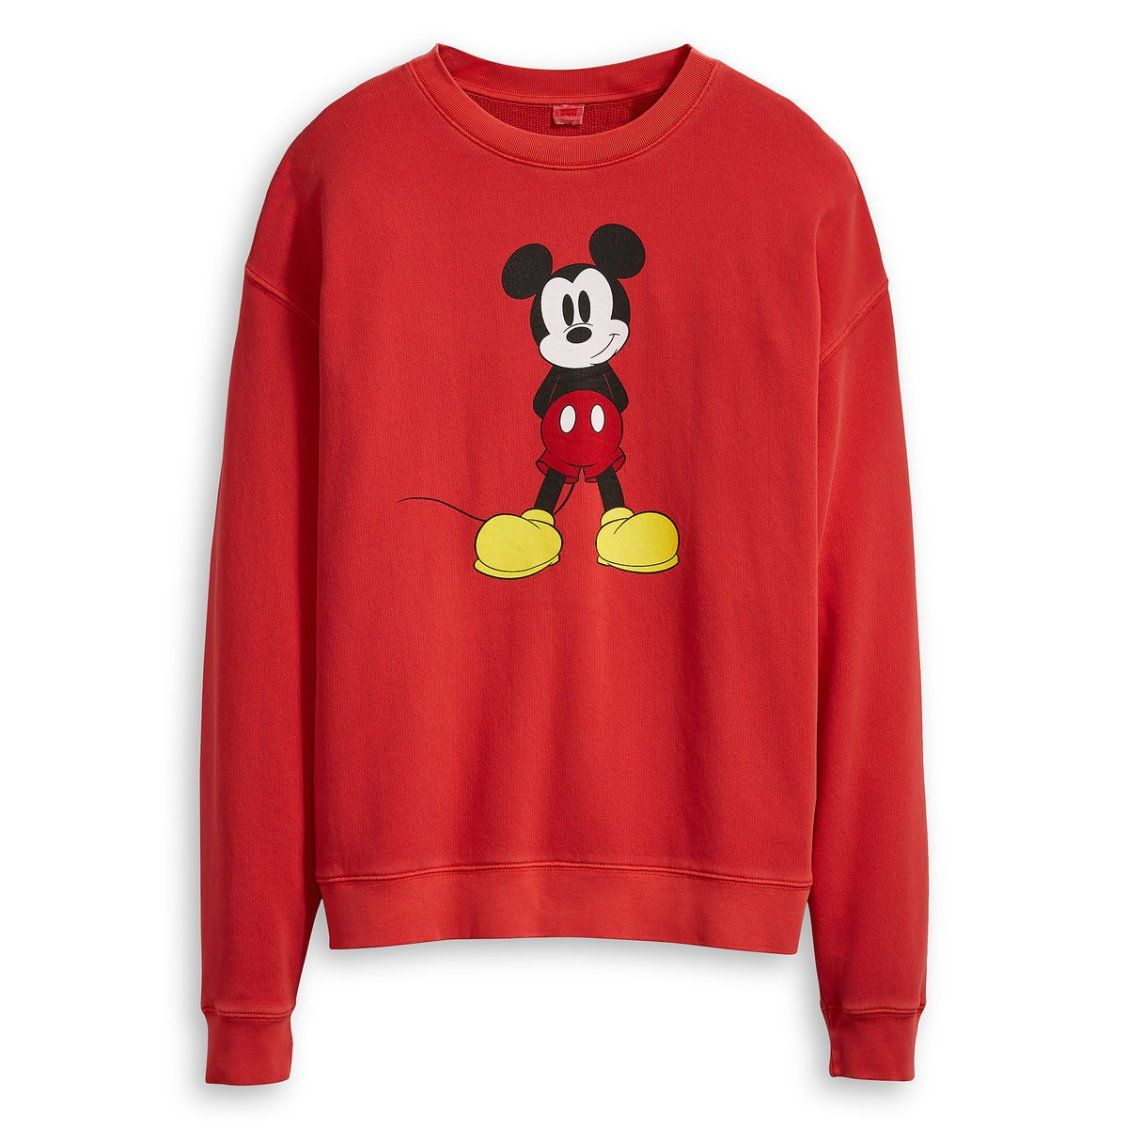 d318eed799771 Mickey Mouse Sweatshirt for Women by Levi's - Red in 2019 | Gifts ...